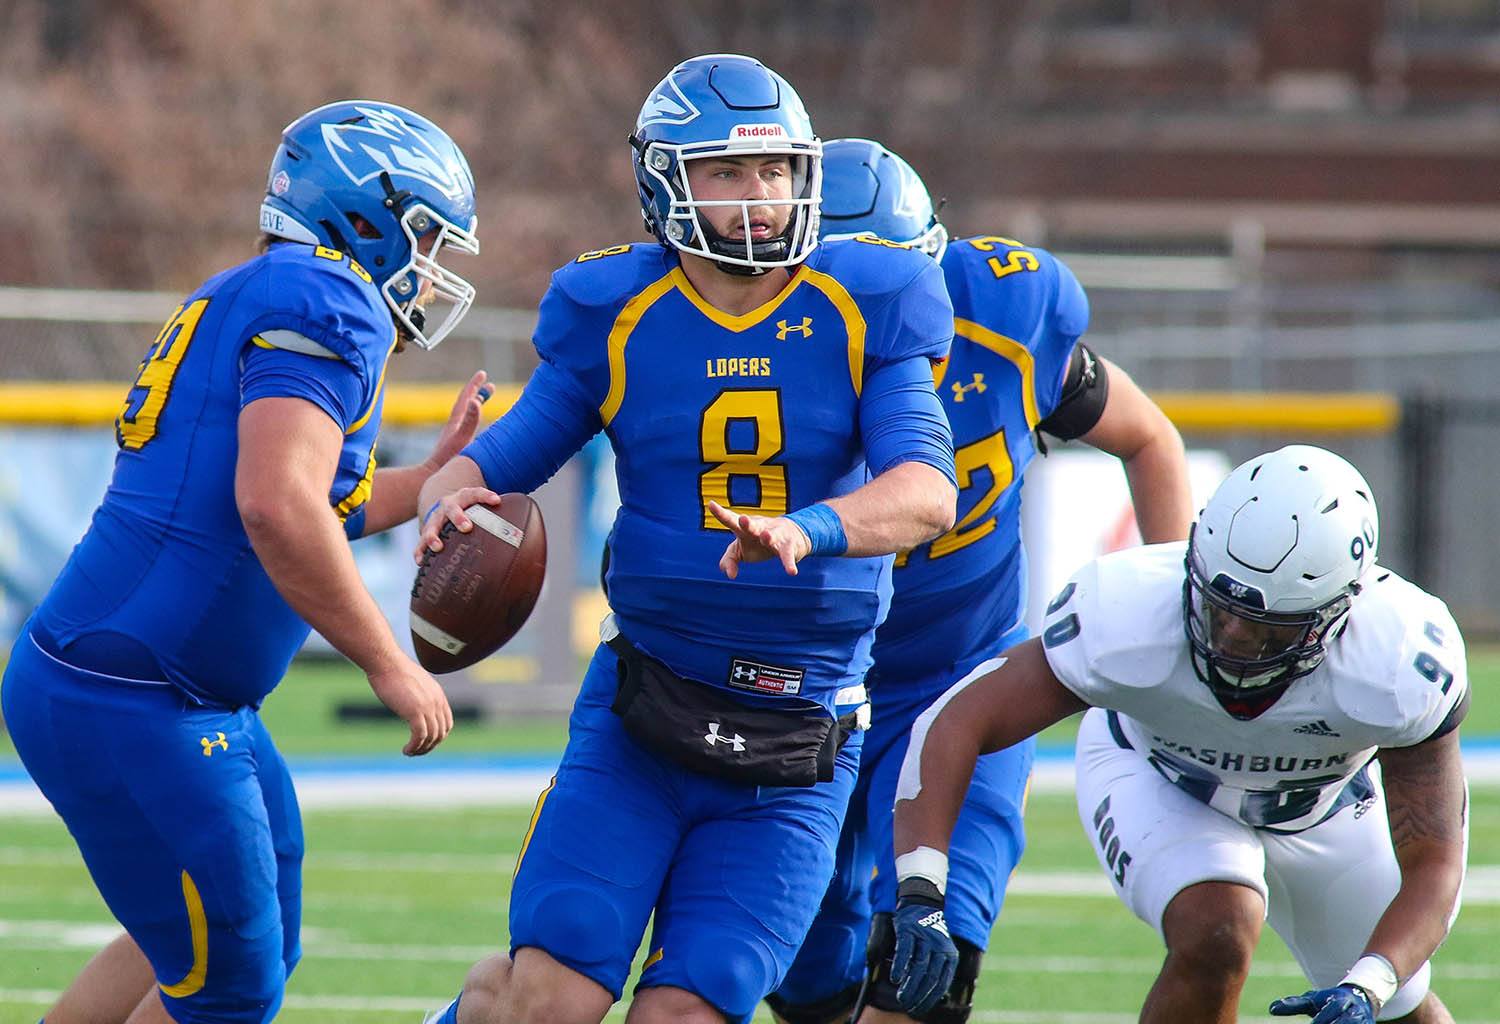 """Redshirt senior quarterback Alex McGinnis (8) has racked up nearly 2,800 total yards and 25 touchdowns during his UNK career, but the Lopers' appearance in Saturday's Mineral Water Bowl trumps any individual accomplishments. """"I didn't come here for personal accolades,"""" McGinnis said. """"I came here to be part of a bowl game. To see that come to fruition has been a pretty surreal experience."""" (UNK Communications)"""